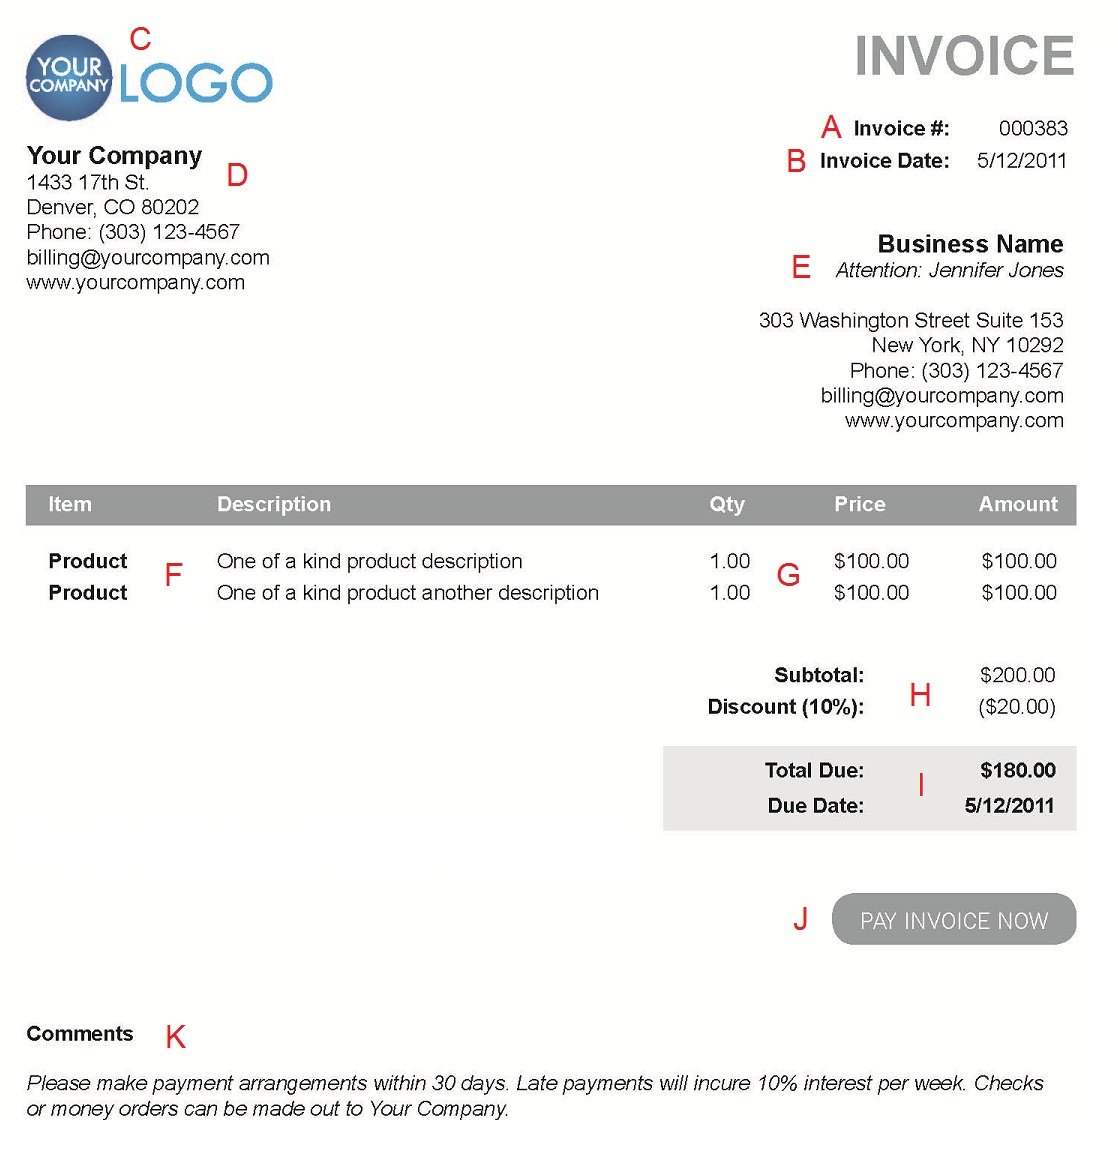 Shopdesignsus  Seductive The  Different Sections Of An Electronic Payment Invoice With Heavenly A  With Amazing Invoicing In Quickbooks Also How Do You Make An Invoice In Addition Artist Invoice Template And Invoice Workflow As Well As Commercial Invoice Example Additionally Invoice Capture From Paysimplecom With Shopdesignsus  Heavenly The  Different Sections Of An Electronic Payment Invoice With Amazing A  And Seductive Invoicing In Quickbooks Also How Do You Make An Invoice In Addition Artist Invoice Template From Paysimplecom